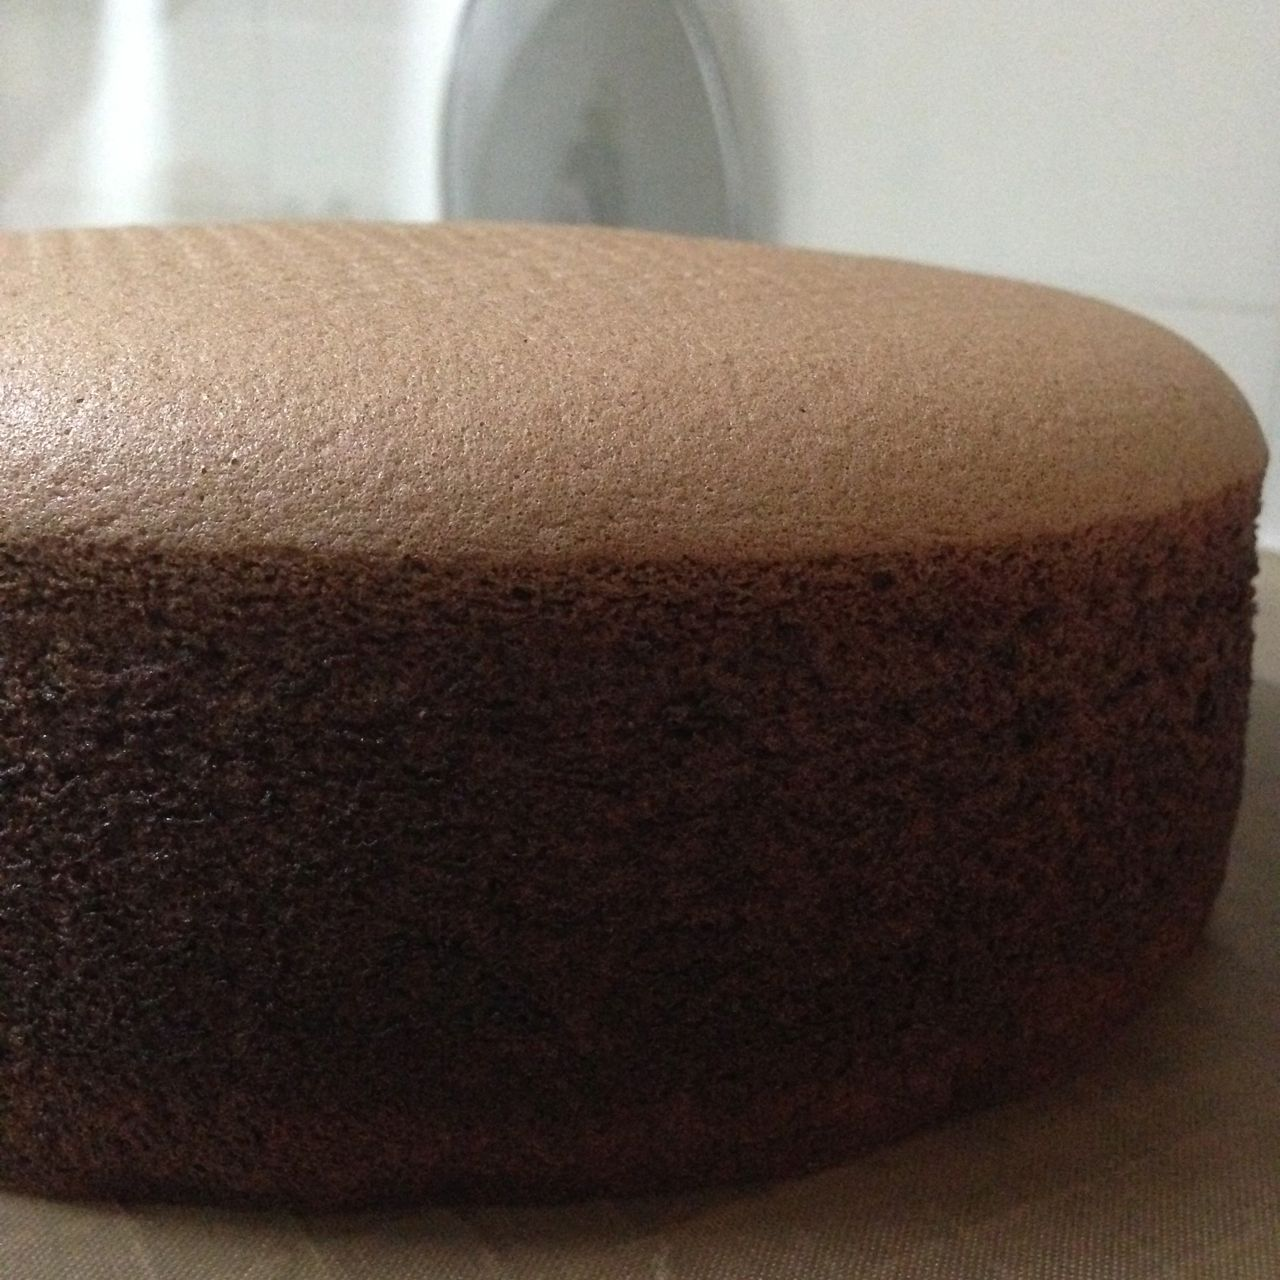 10 inch chocolate sponge cake recipe